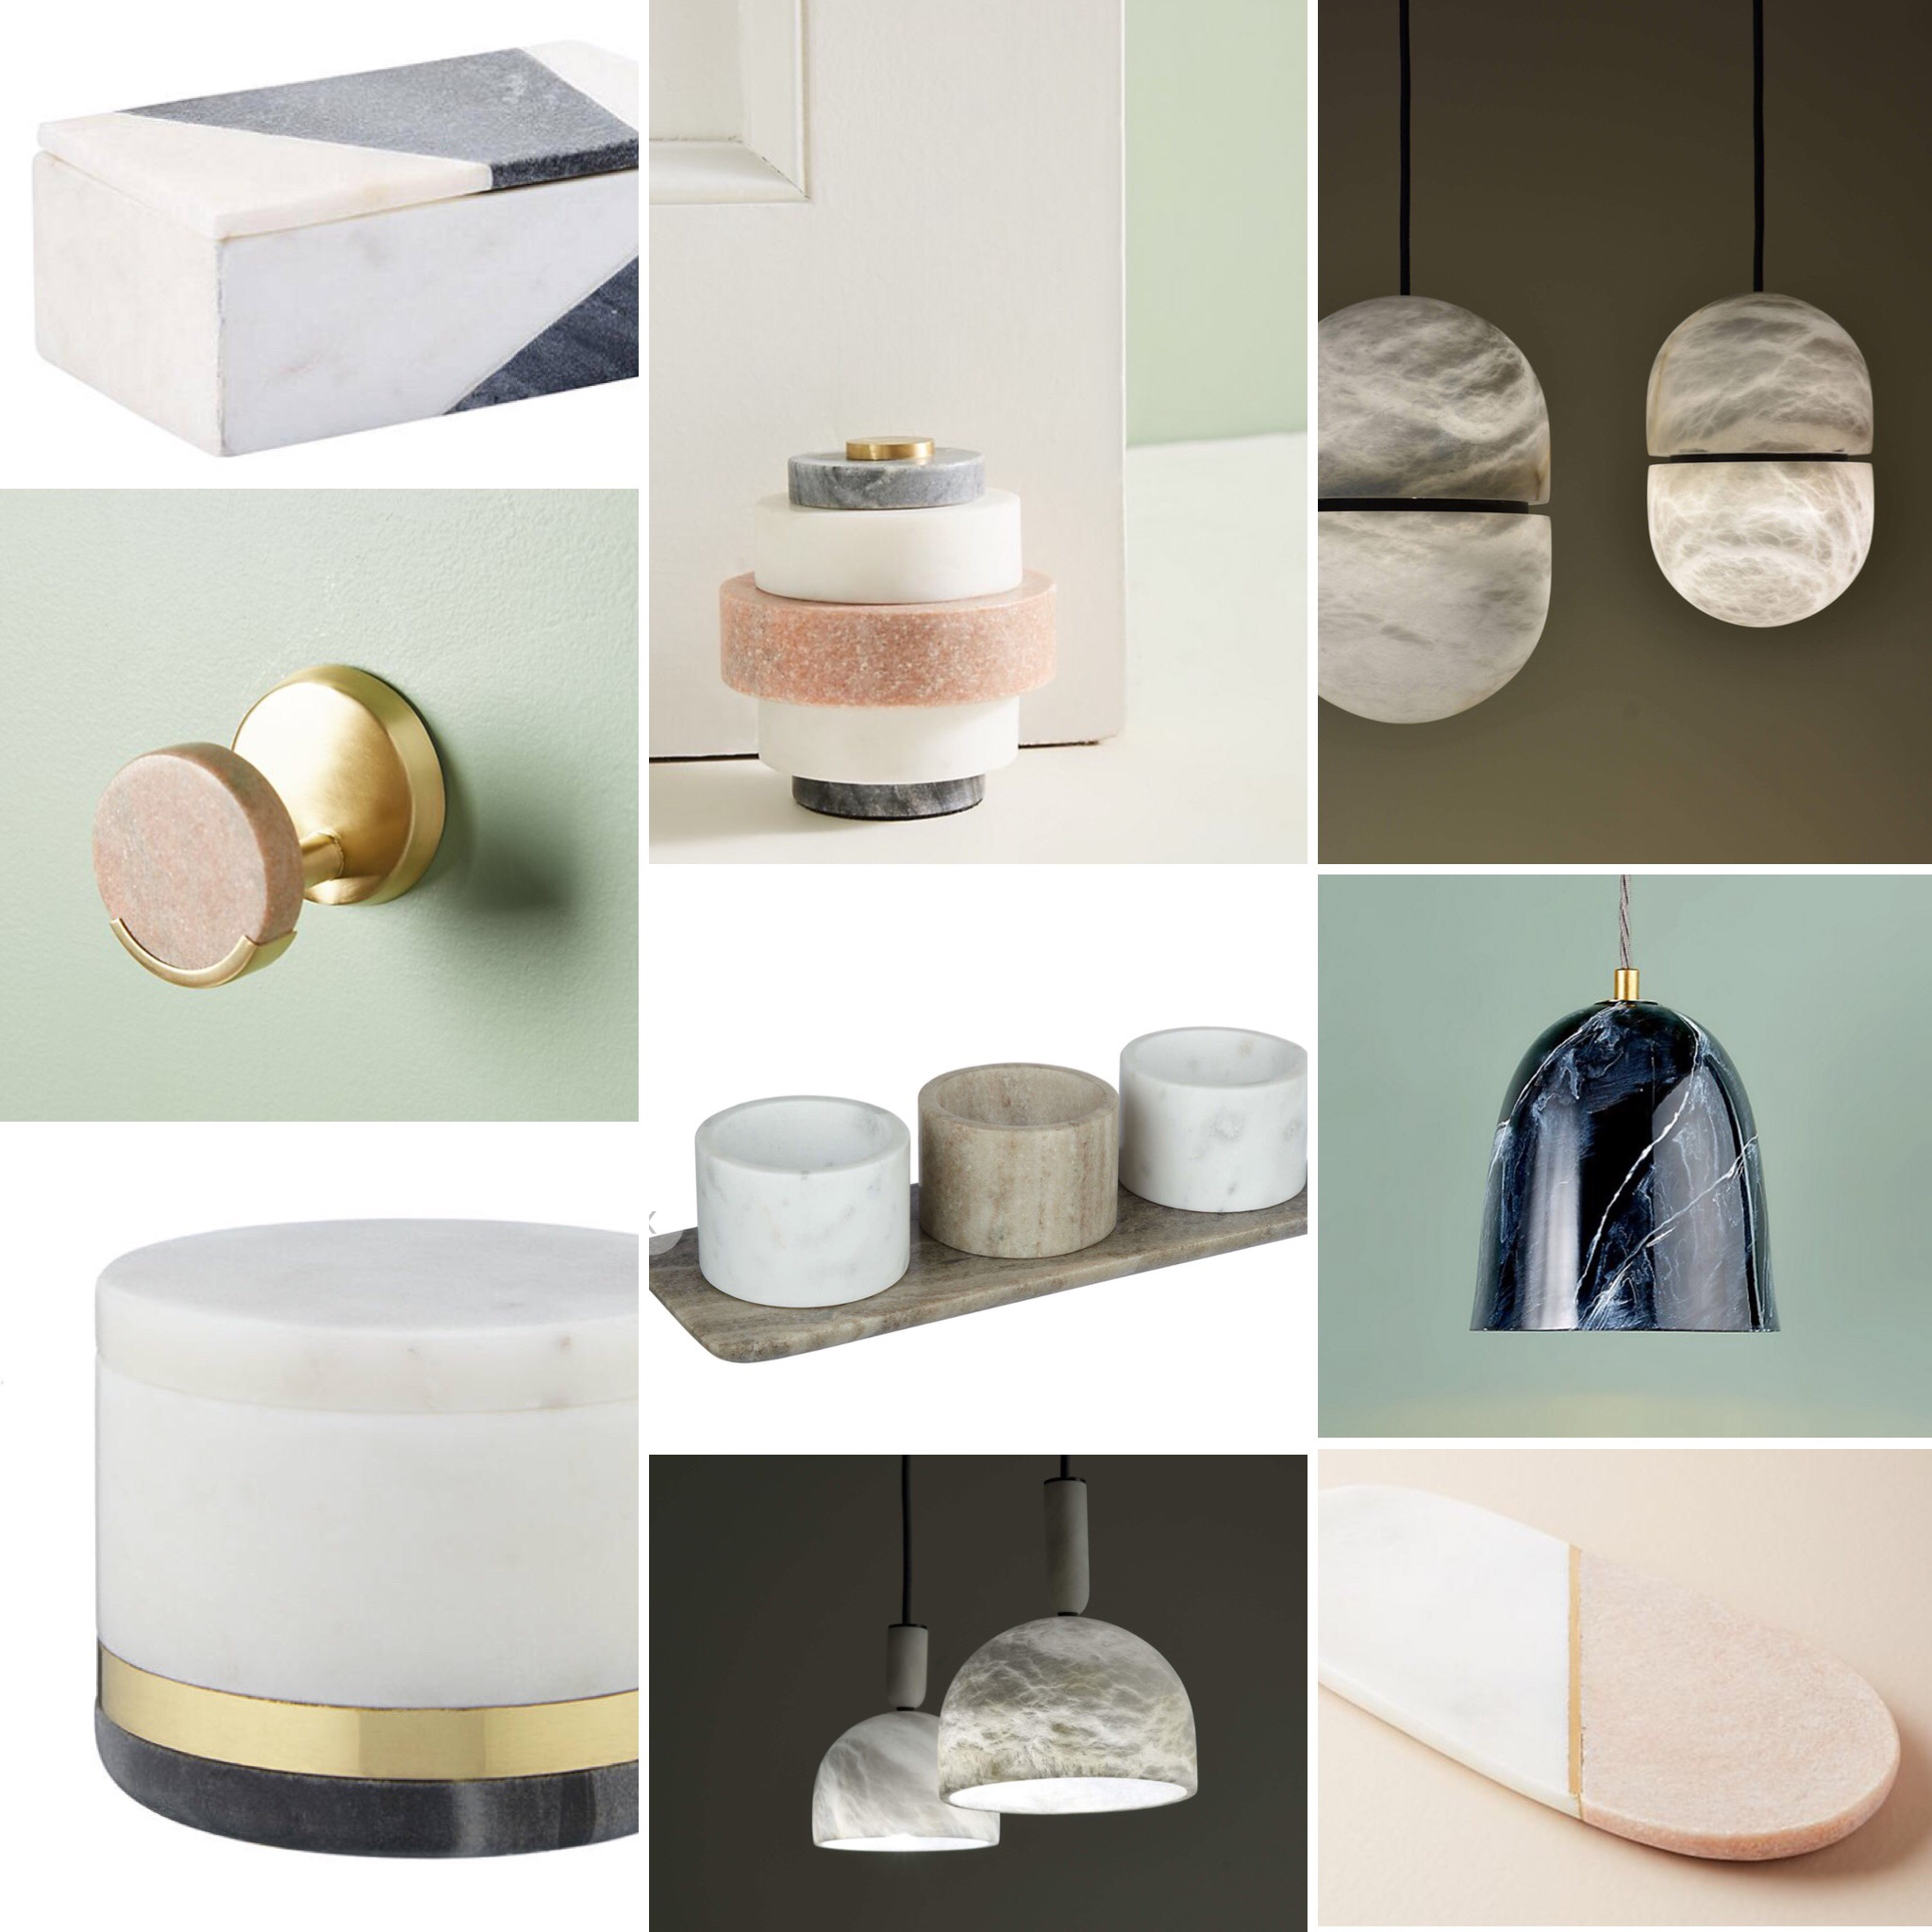 Everyday Luxe: sculptural lights made from alabaster and marble used for everything from pendants to doorstops. Products shown from Anthropologie, John Lewis and Atelier Alain Ellouz.